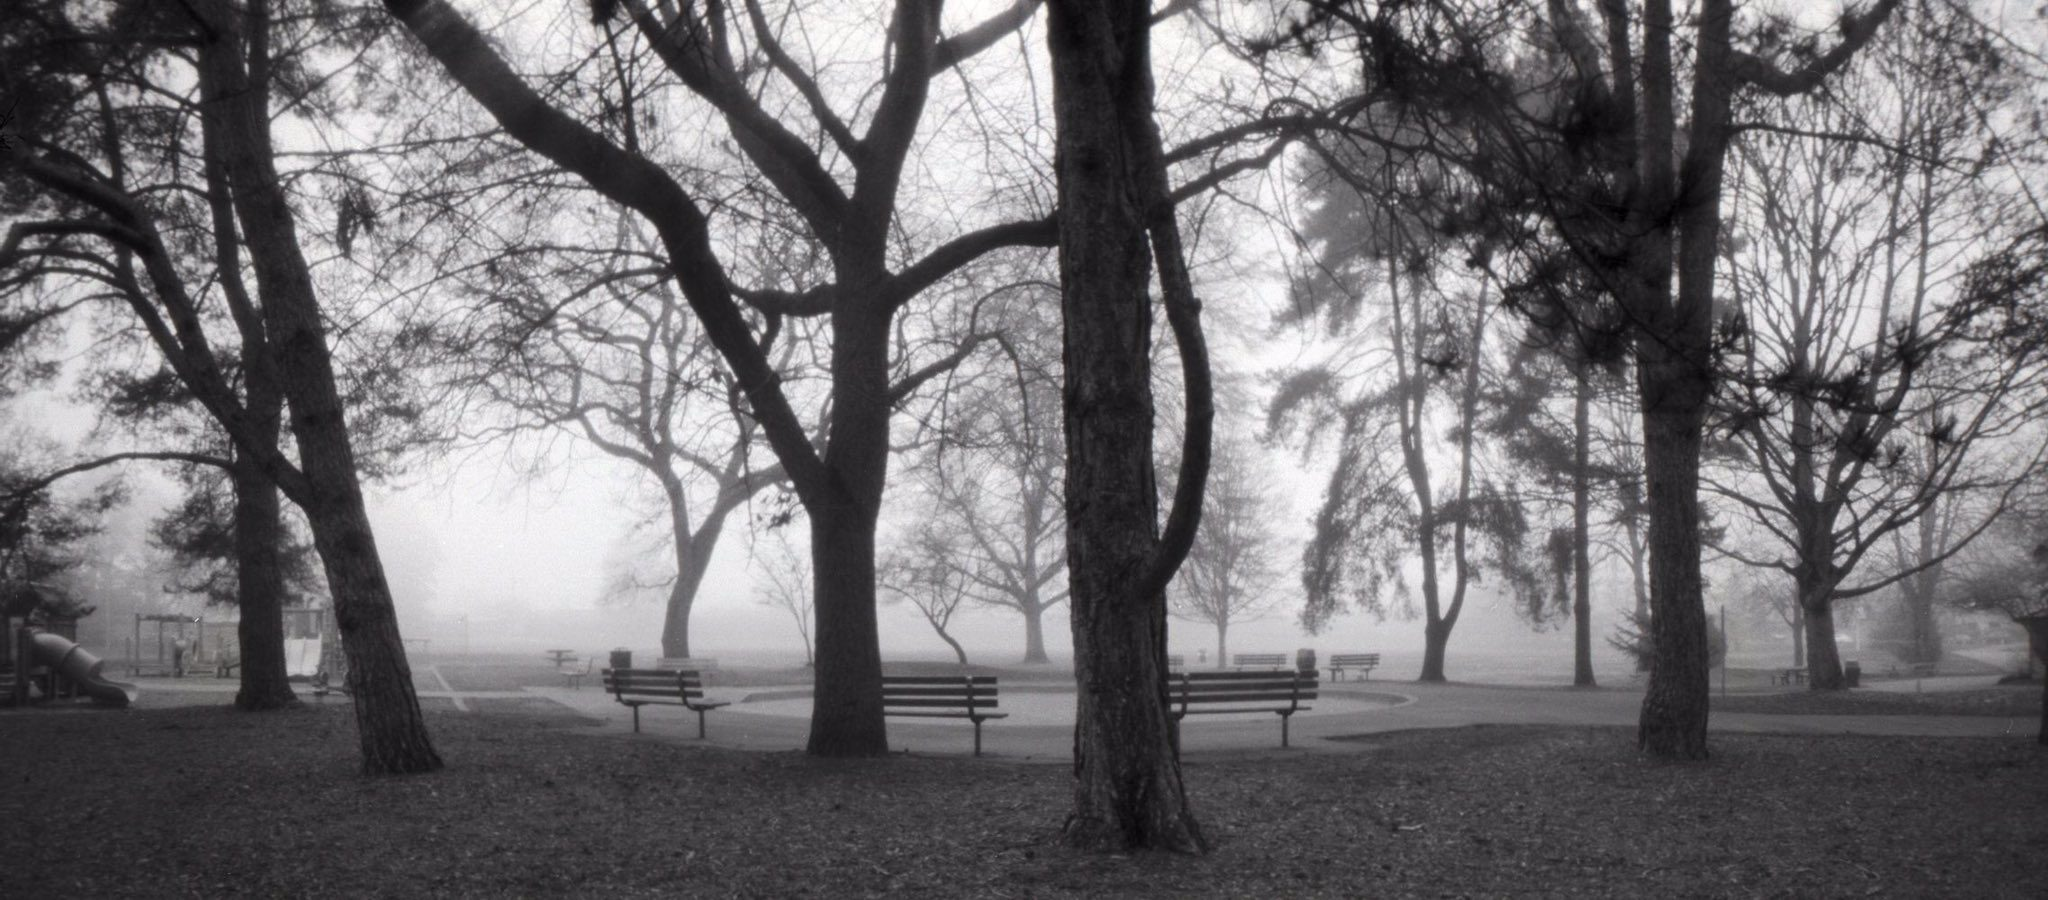 @DrMarsRover From the time before many of our parks closed. Fog in the park. @ILFORDPhoto Delta 100 RSS 6x12 pinhole #bestshotsofar #ilfordphoto #fridayfavourites